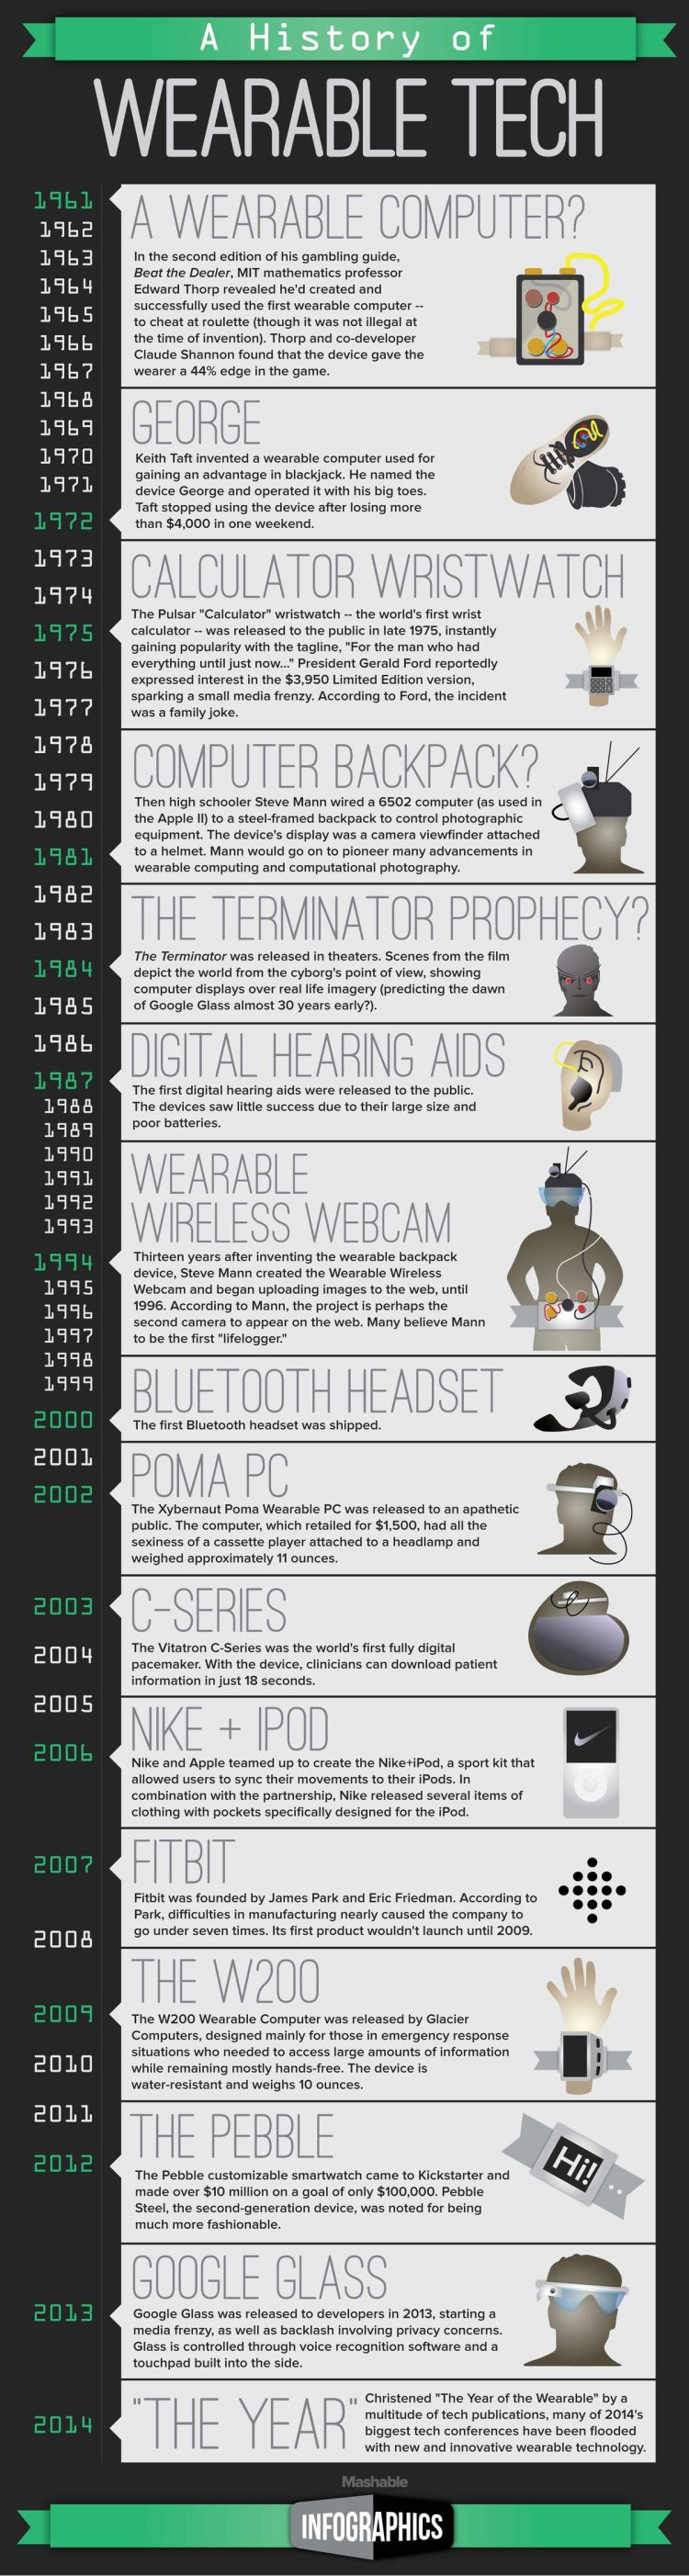 The history of wearable tech